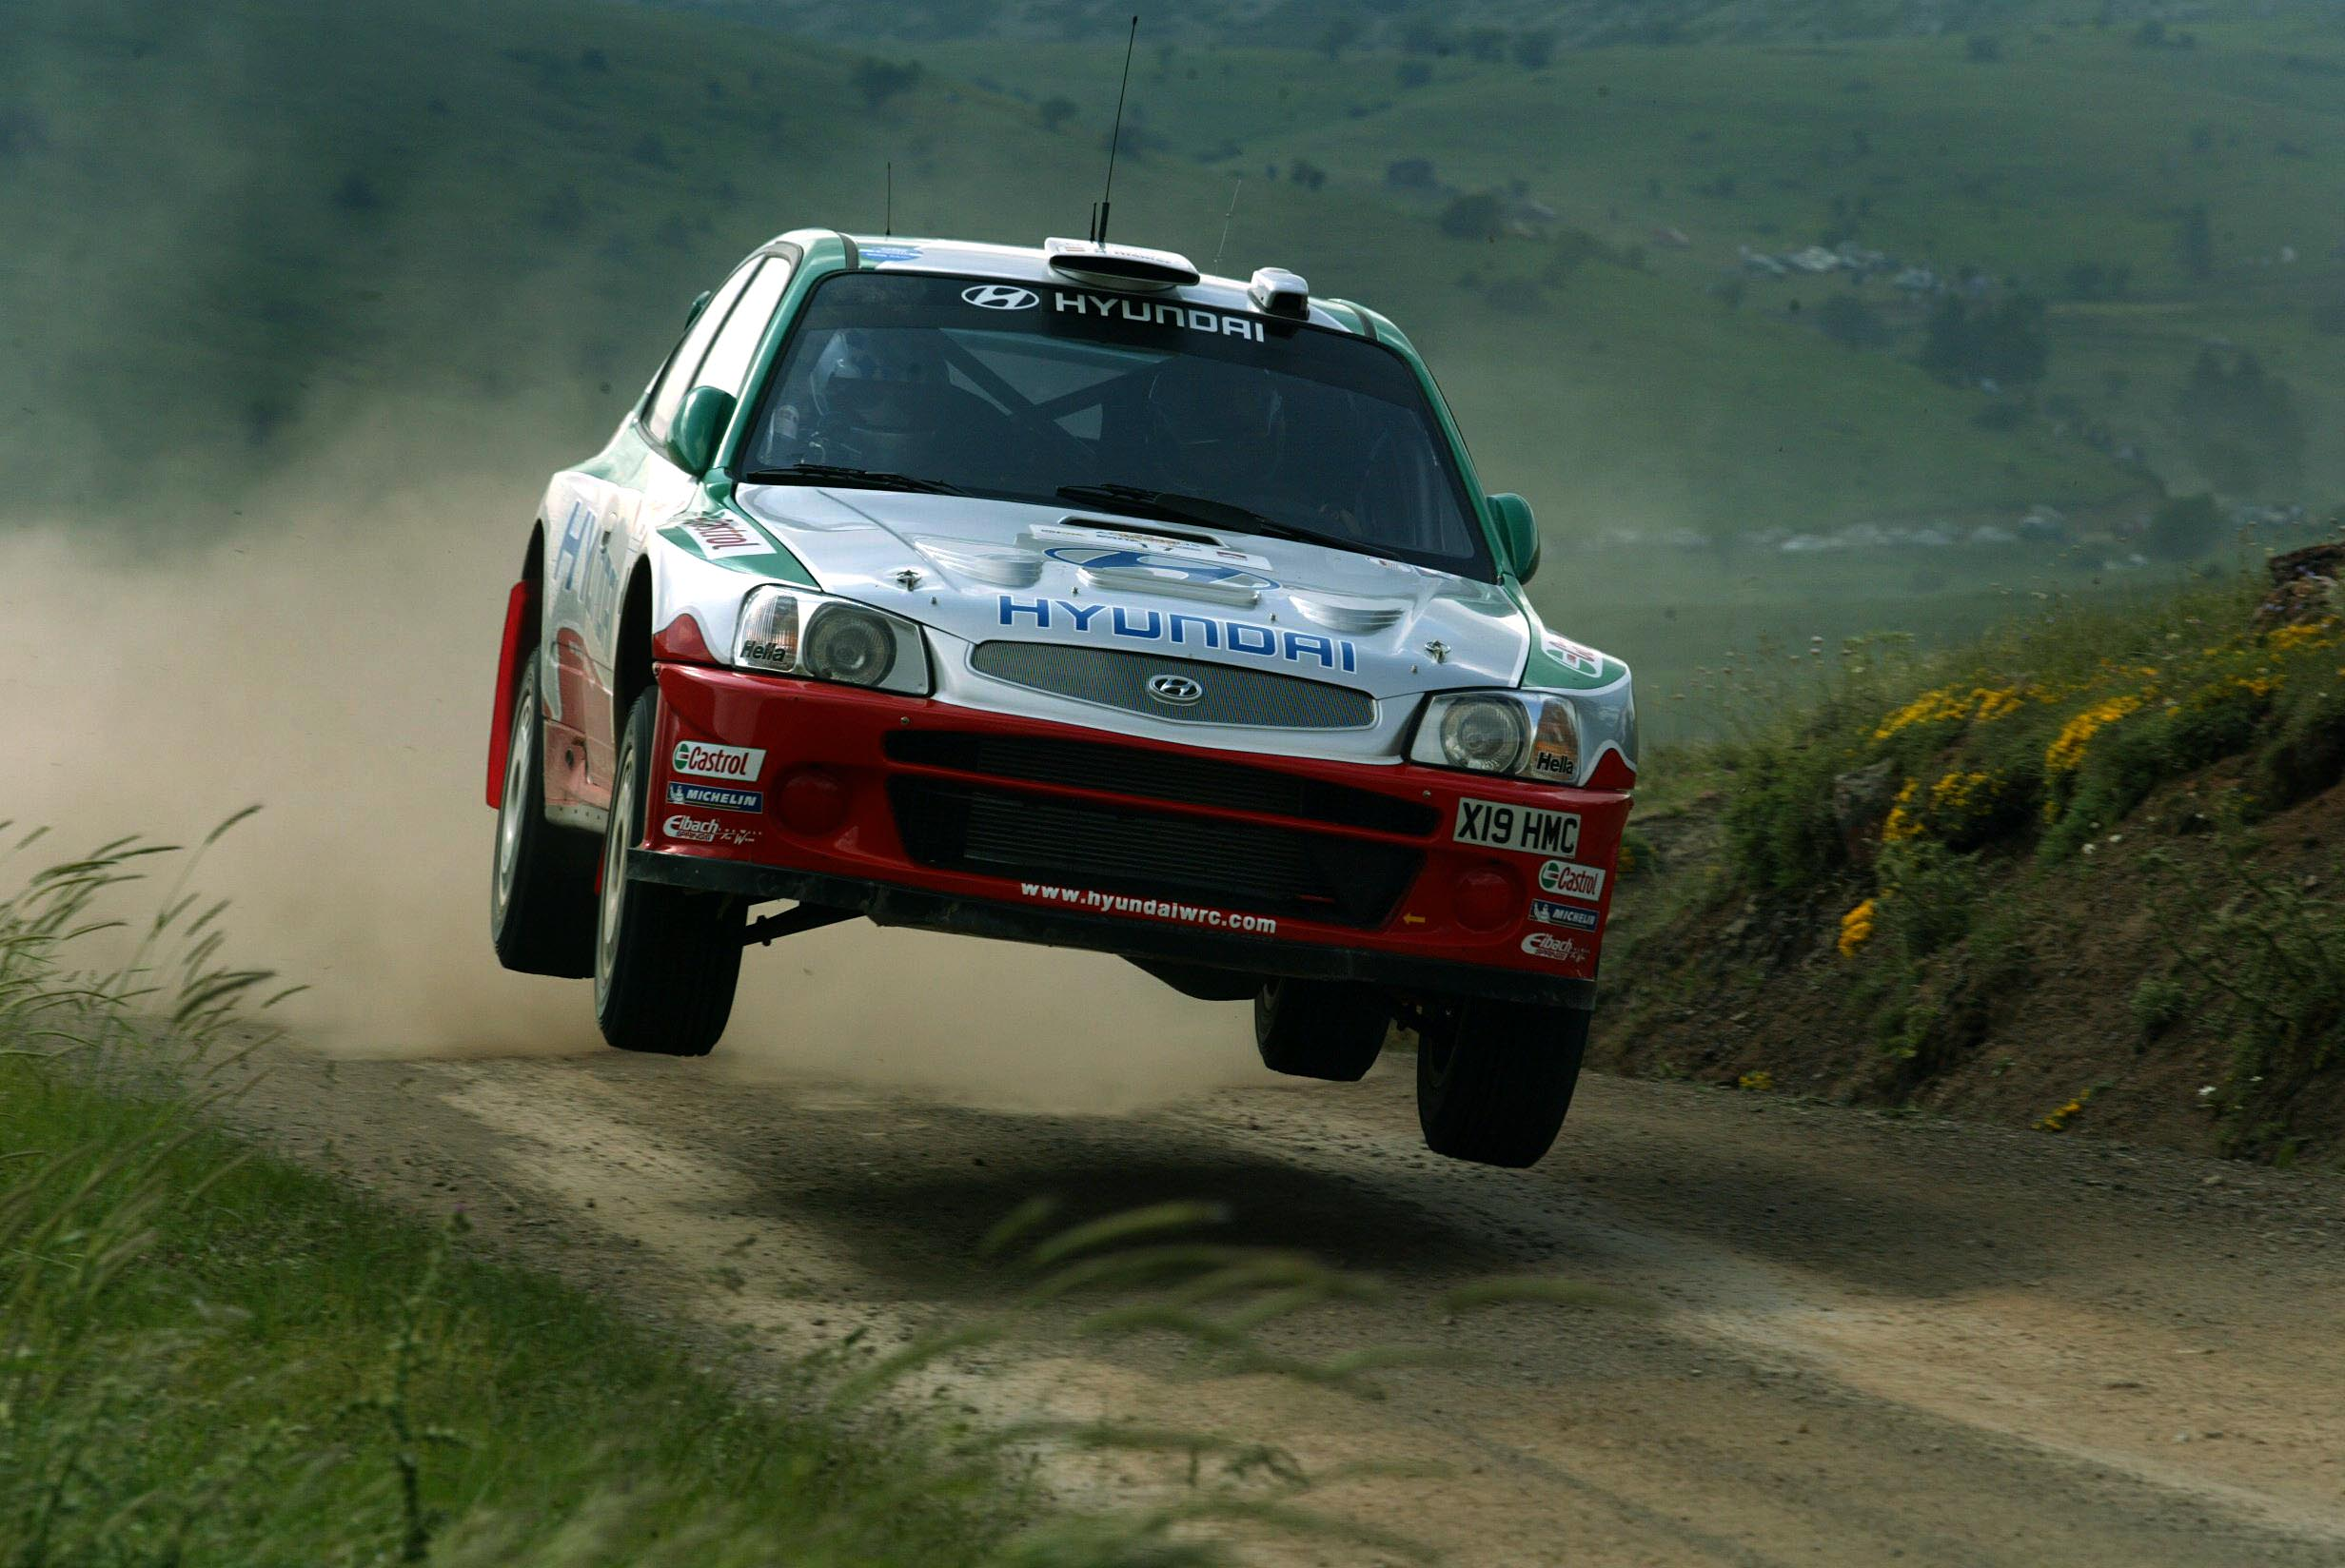 64840 download wallpaper Sports, Hyundai, Wrc, Wrc 2002 screensavers and pictures for free